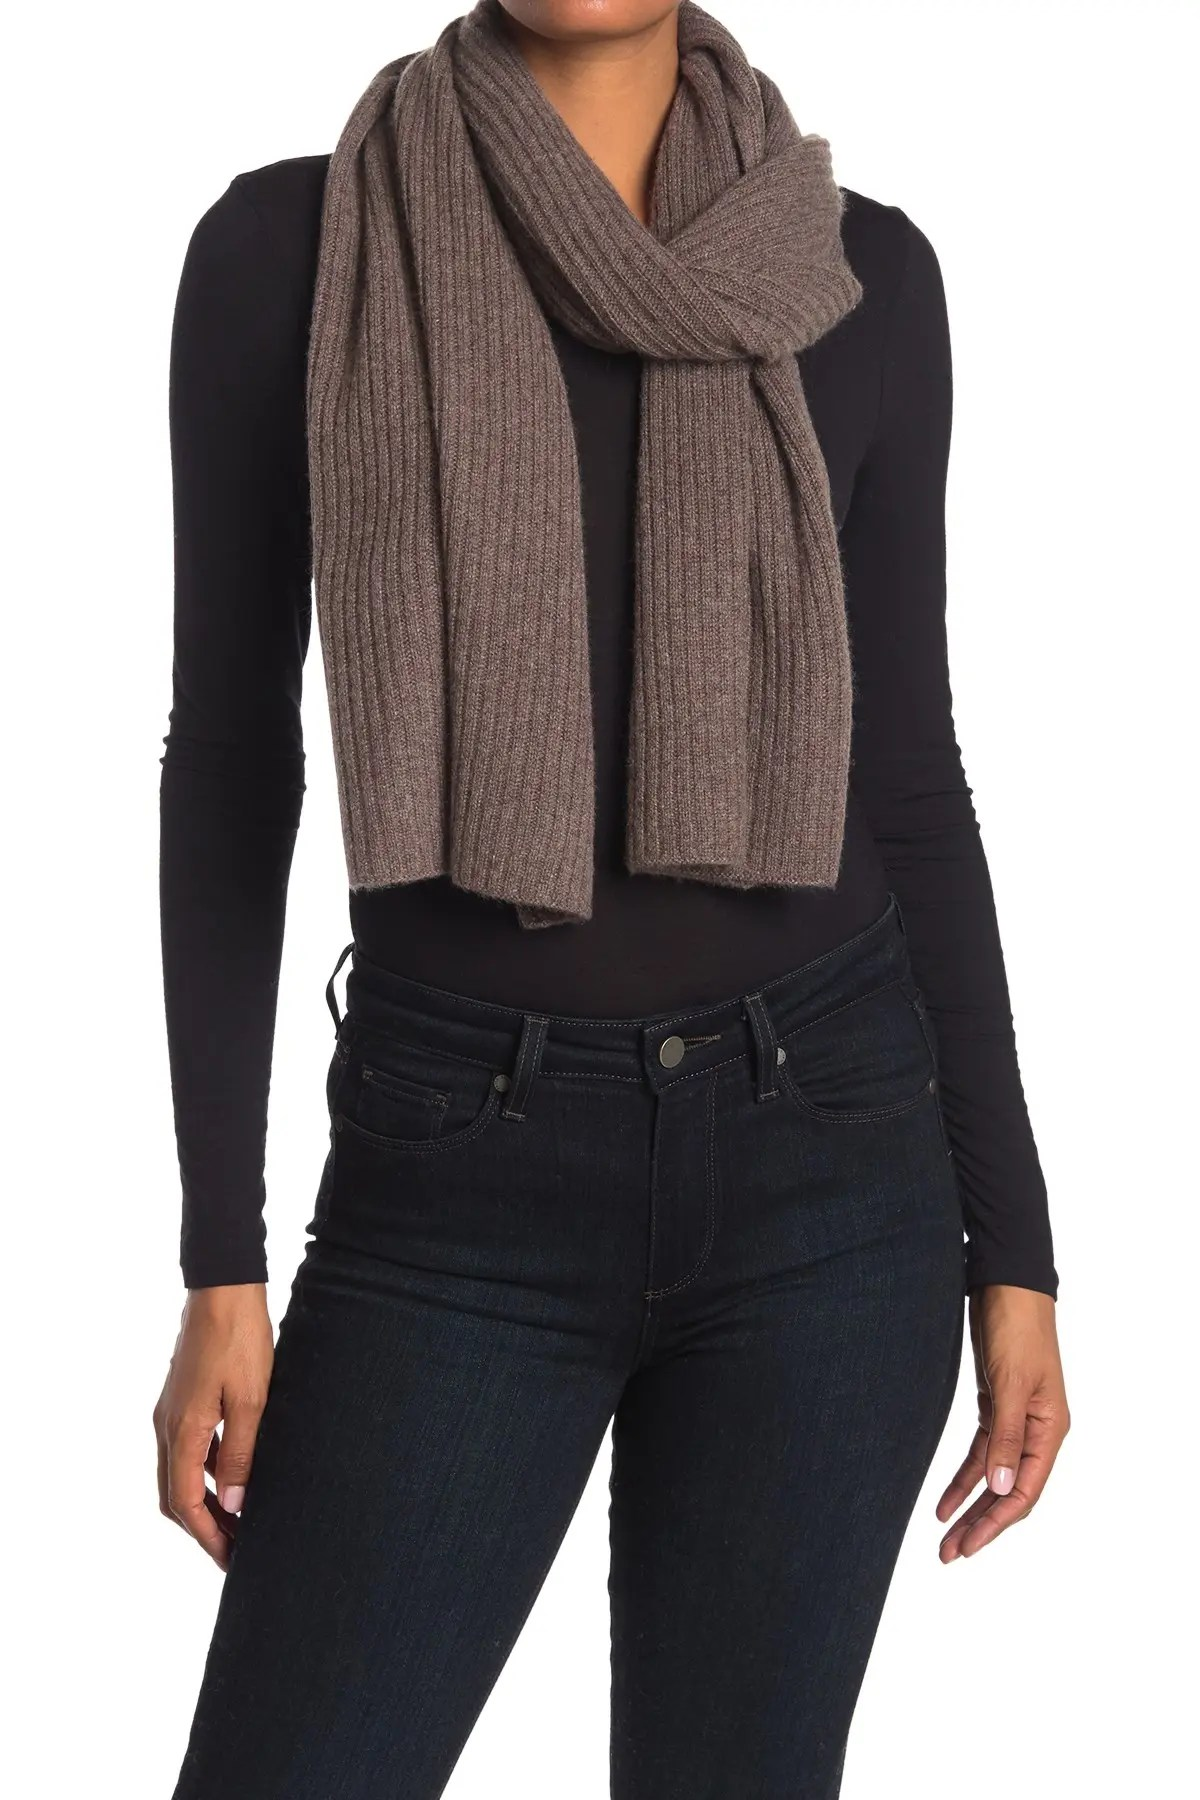 naked cashmere unisex roman ribbed cashmere scarf nordstrom rack